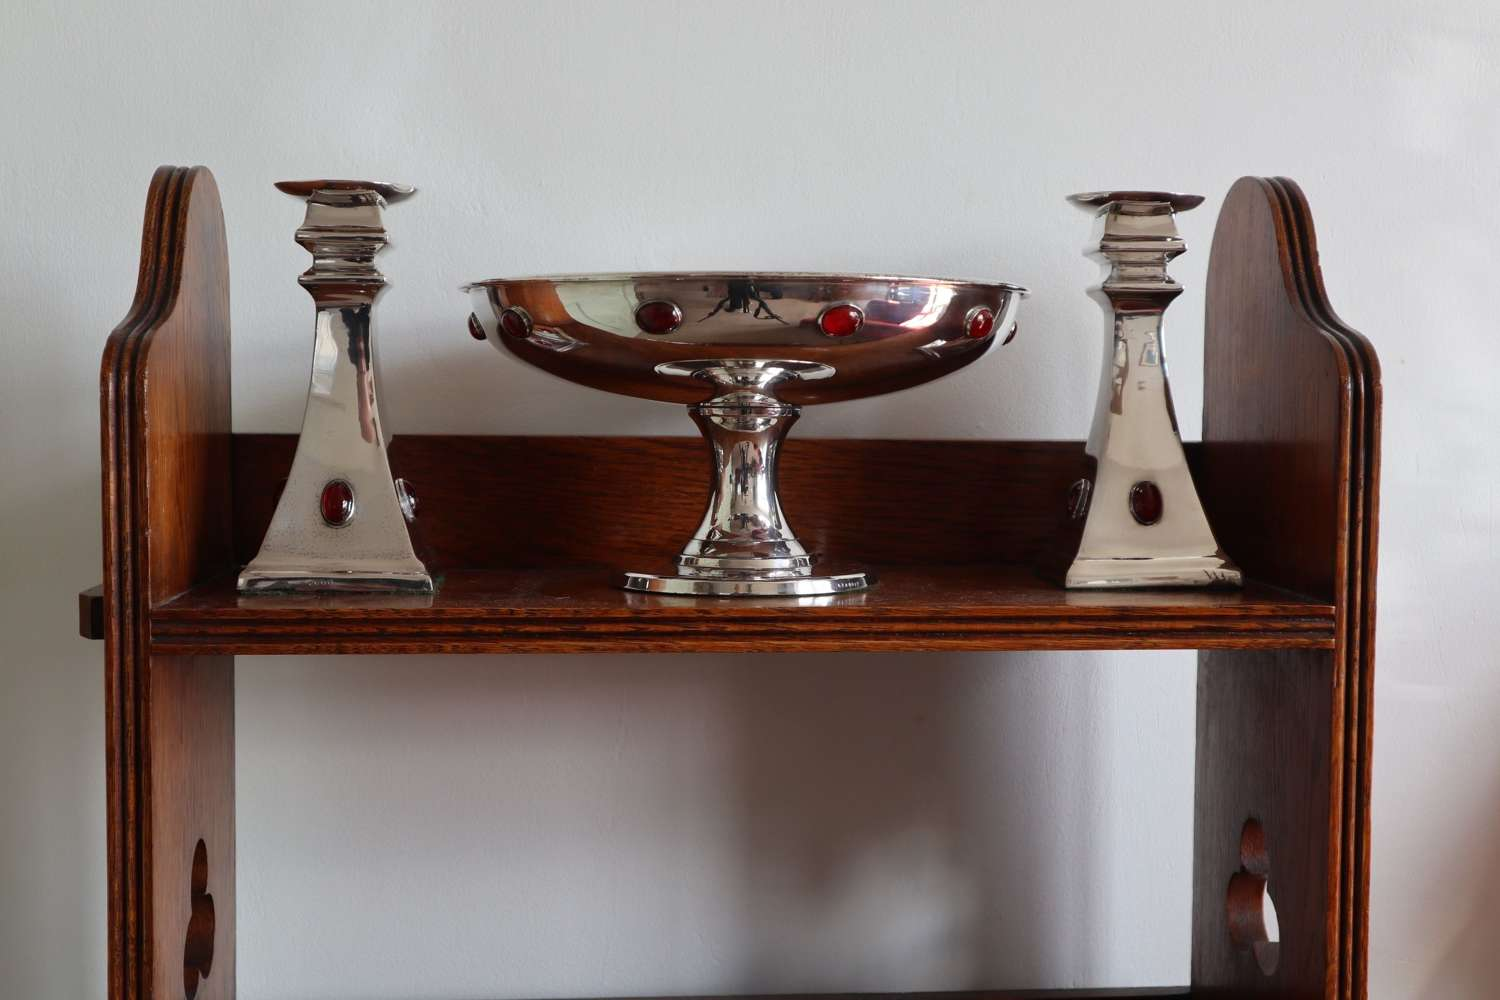 Arts & Crafts / Art Deco, silver plated compote & candlesticks c.1920.